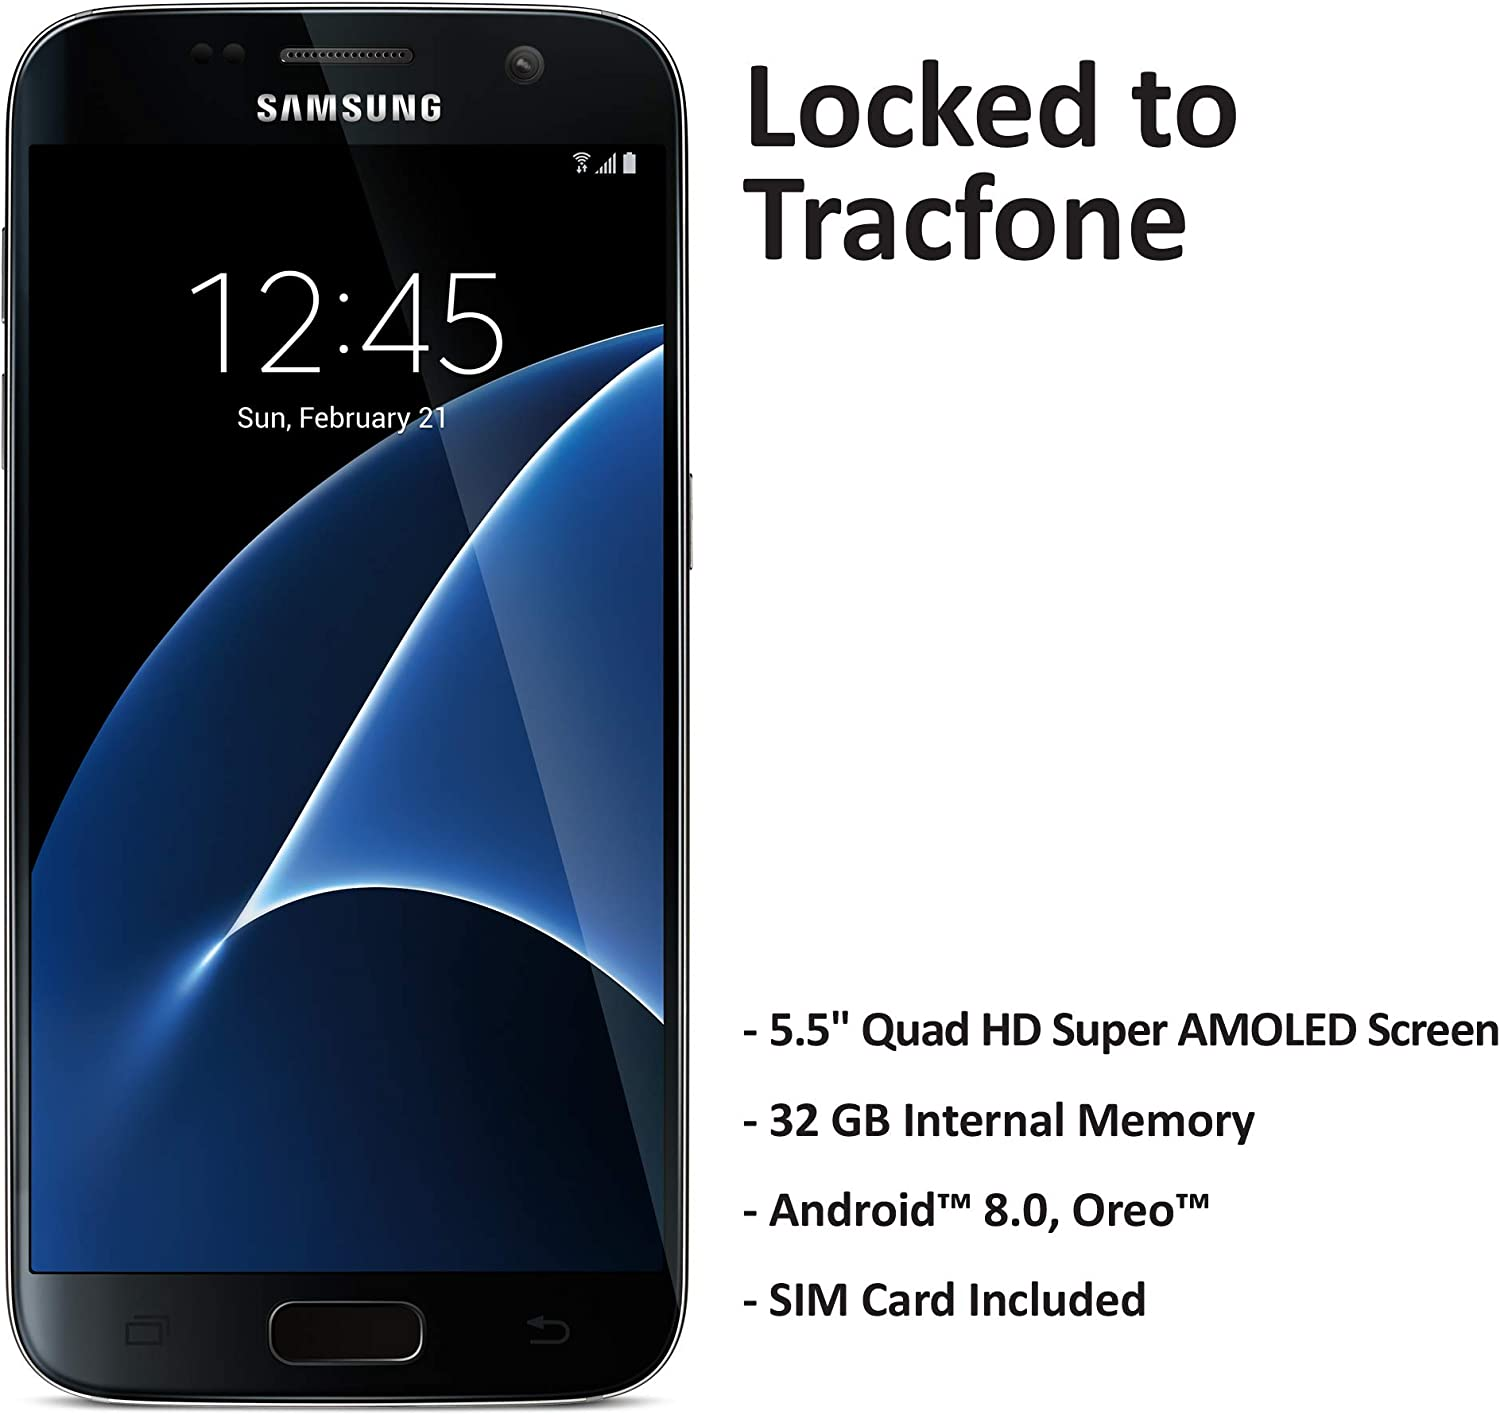 ($50 eGift Card Promotion) TracFone Samsung Galaxy S7 4G LTE Prepaid Smartphone (Locked) - Black - 32GB - Sim Card Included - CDMA